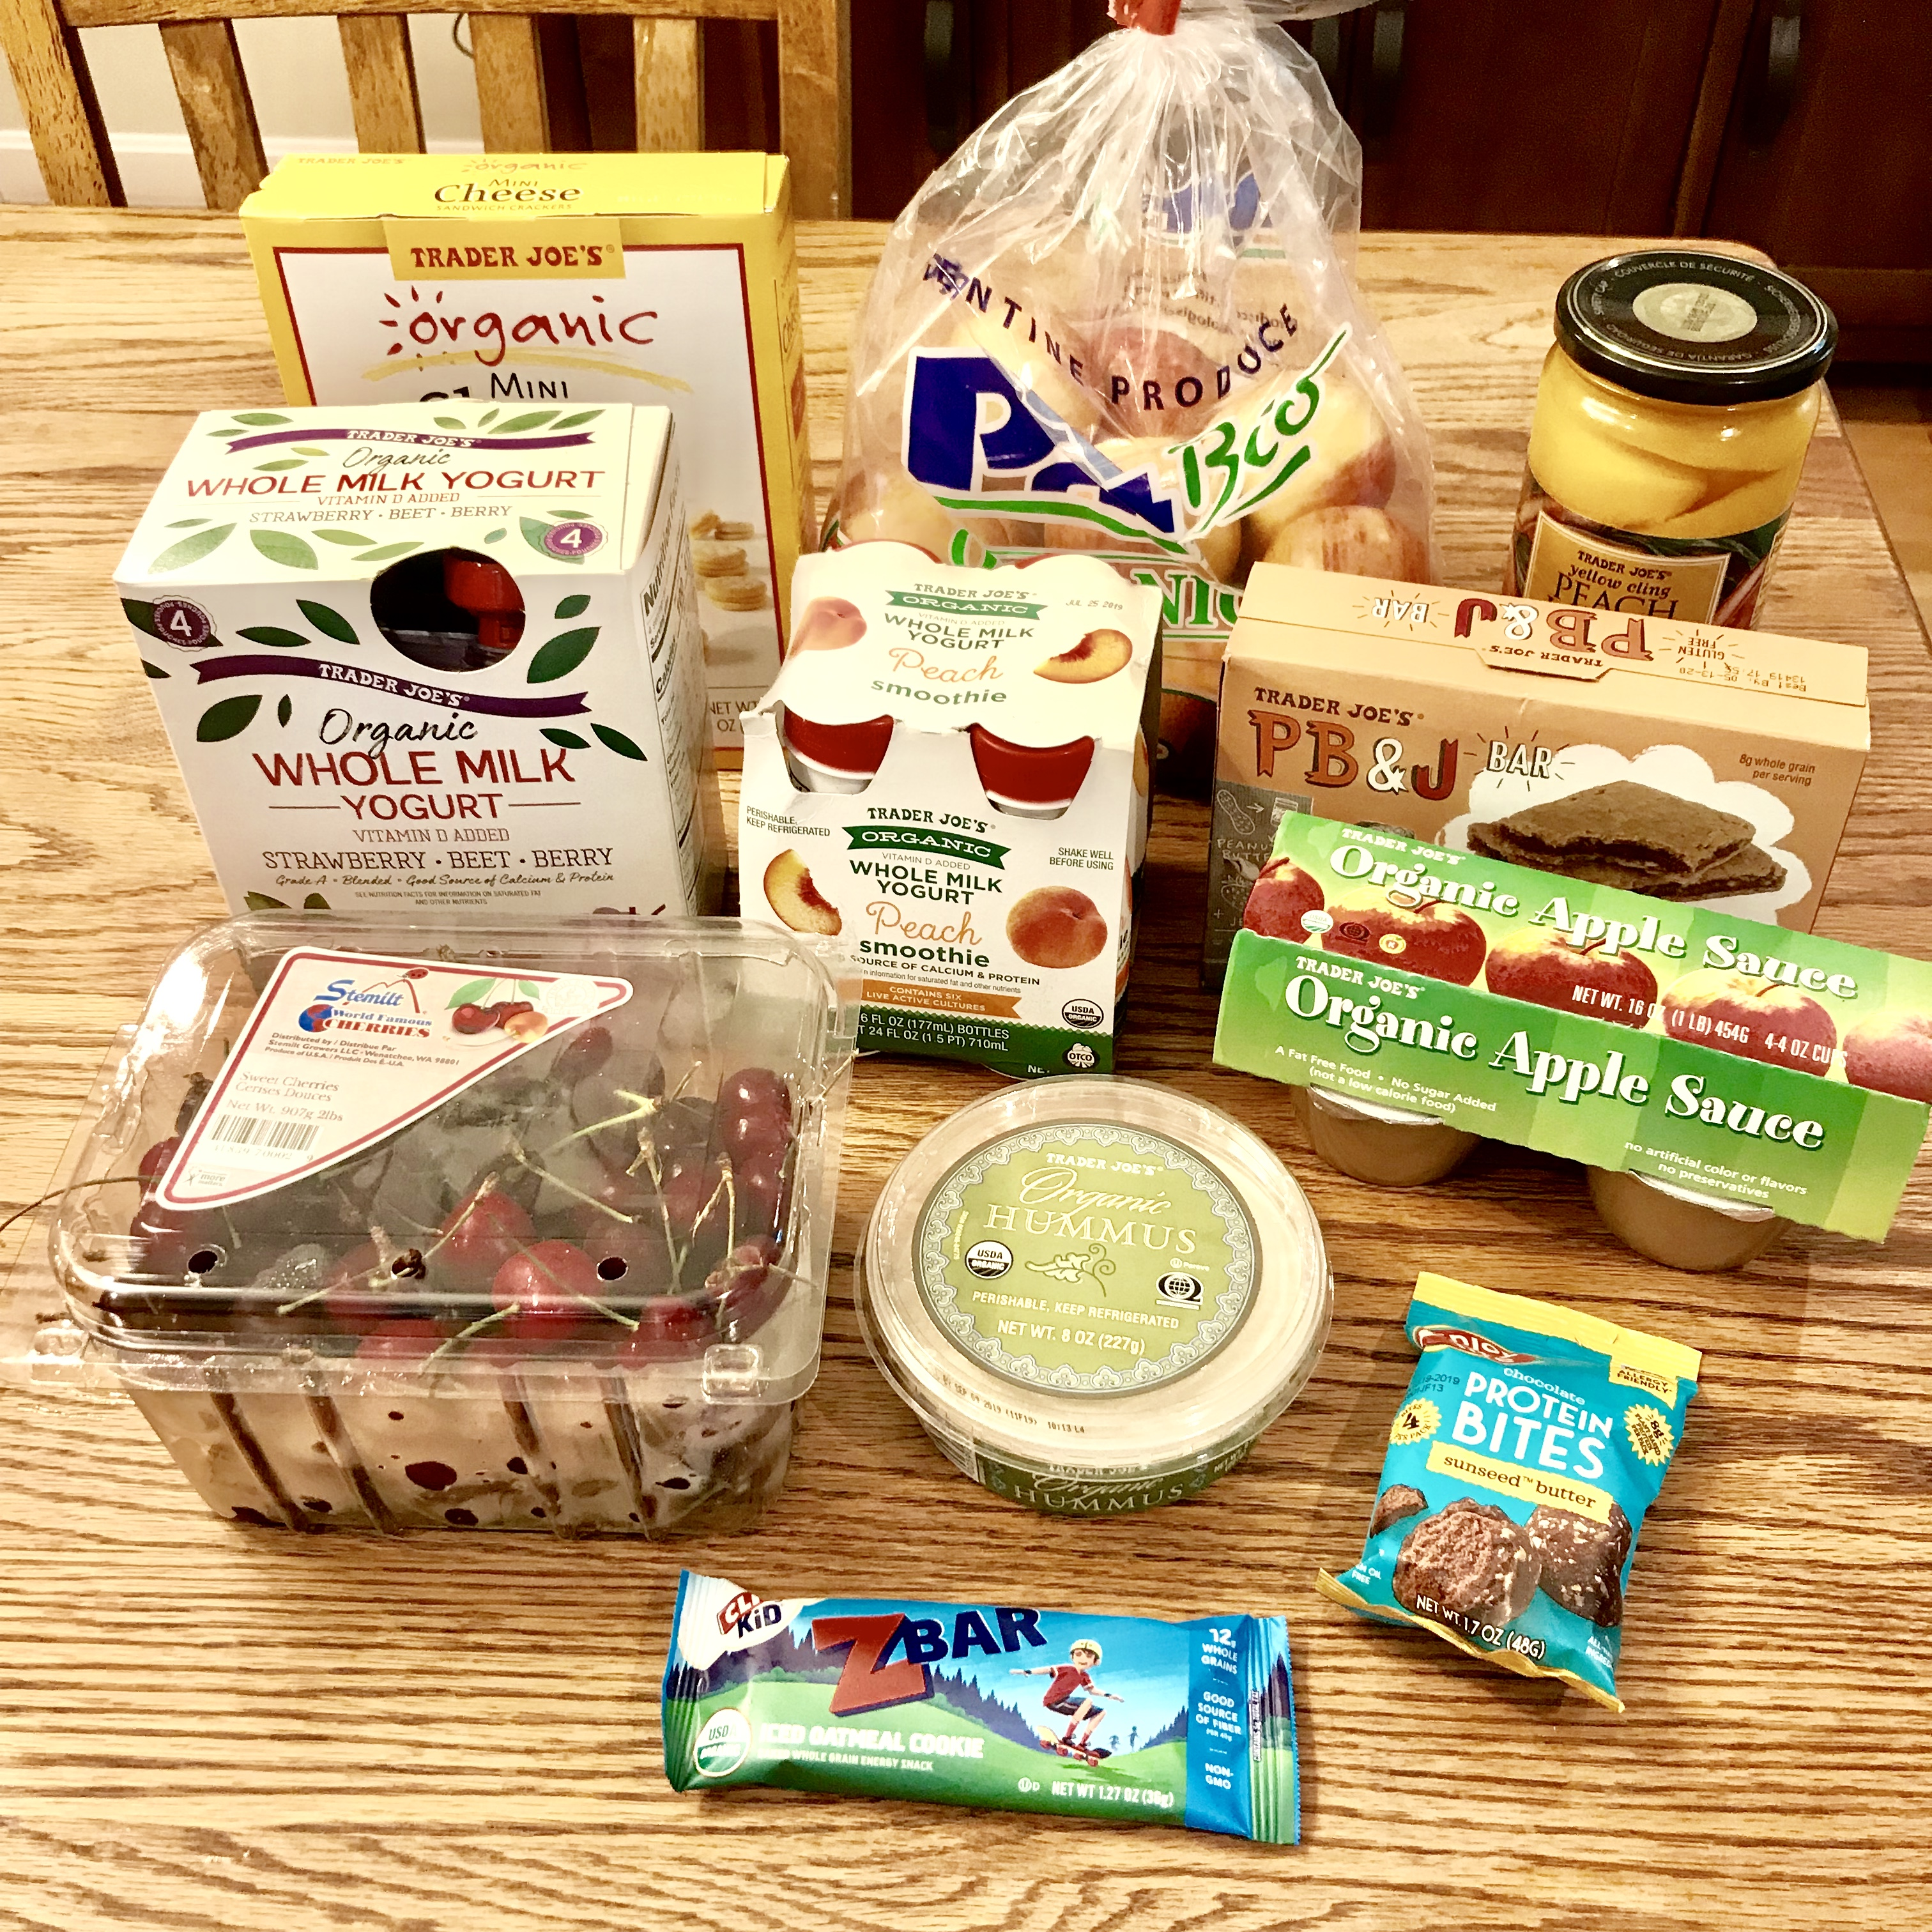 Healthy lunchbox foods options from Trader Joe's